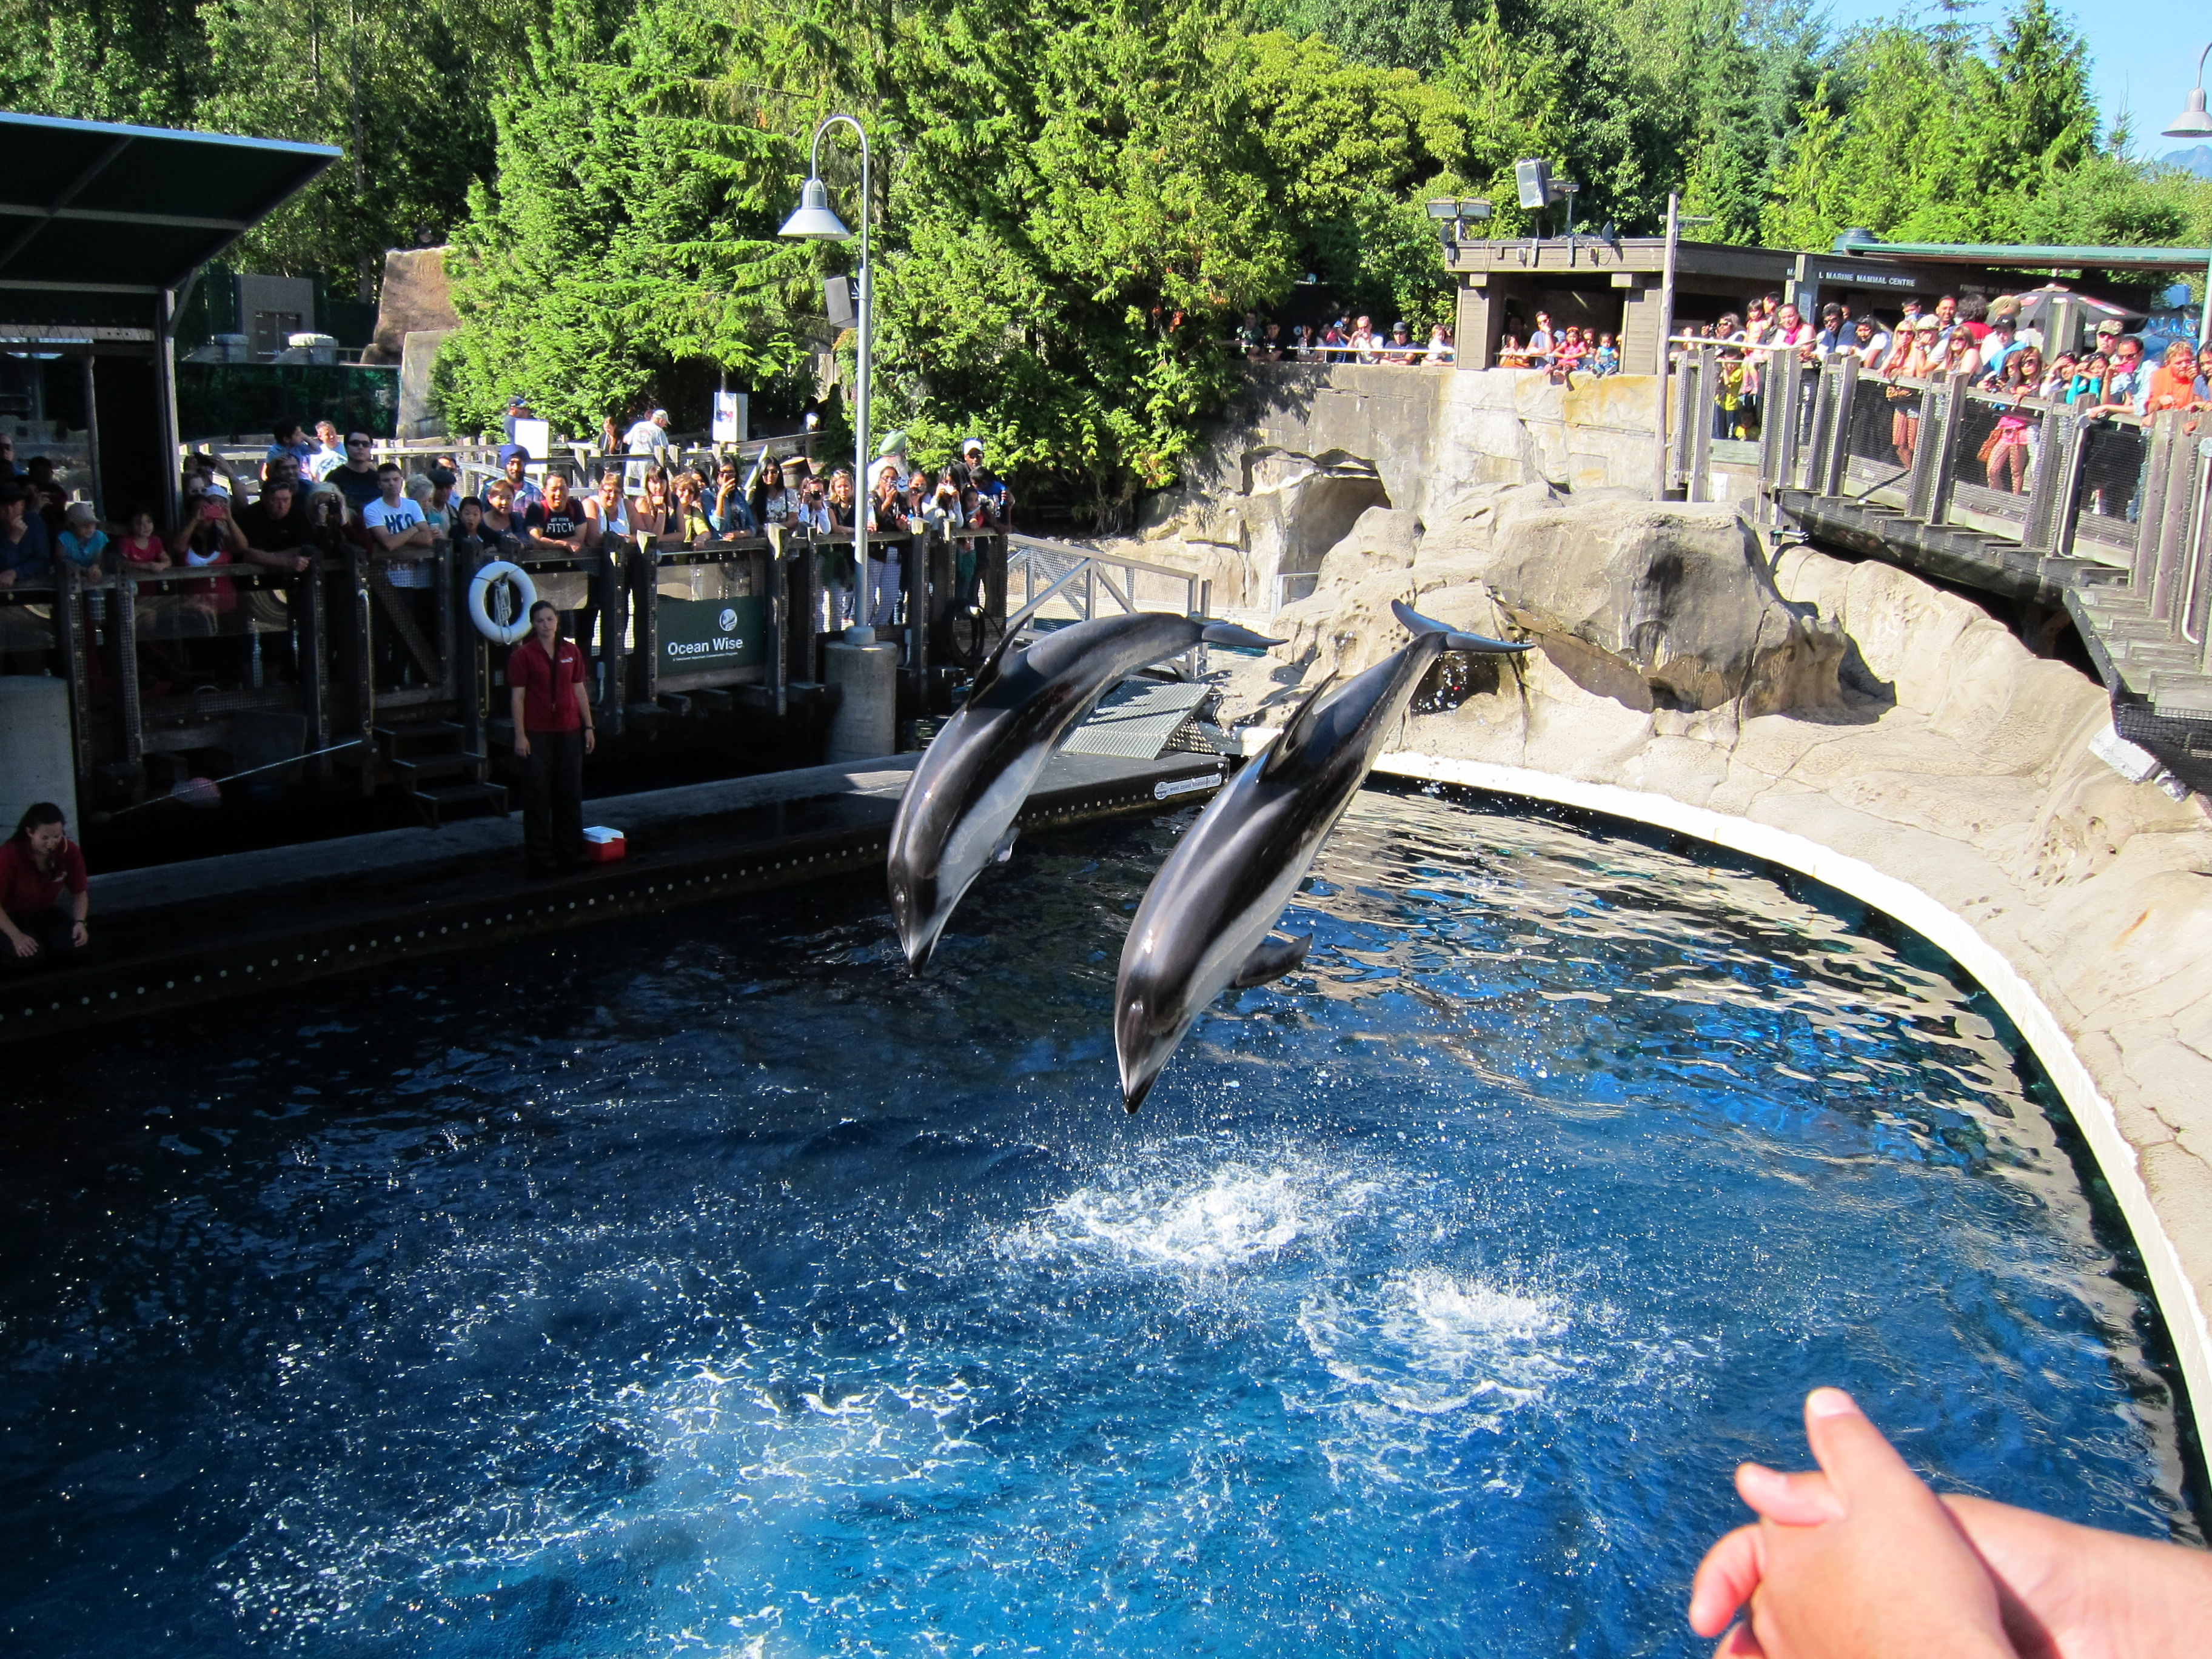 The Vancouver Aquarium Torn Between The Good And The Bad